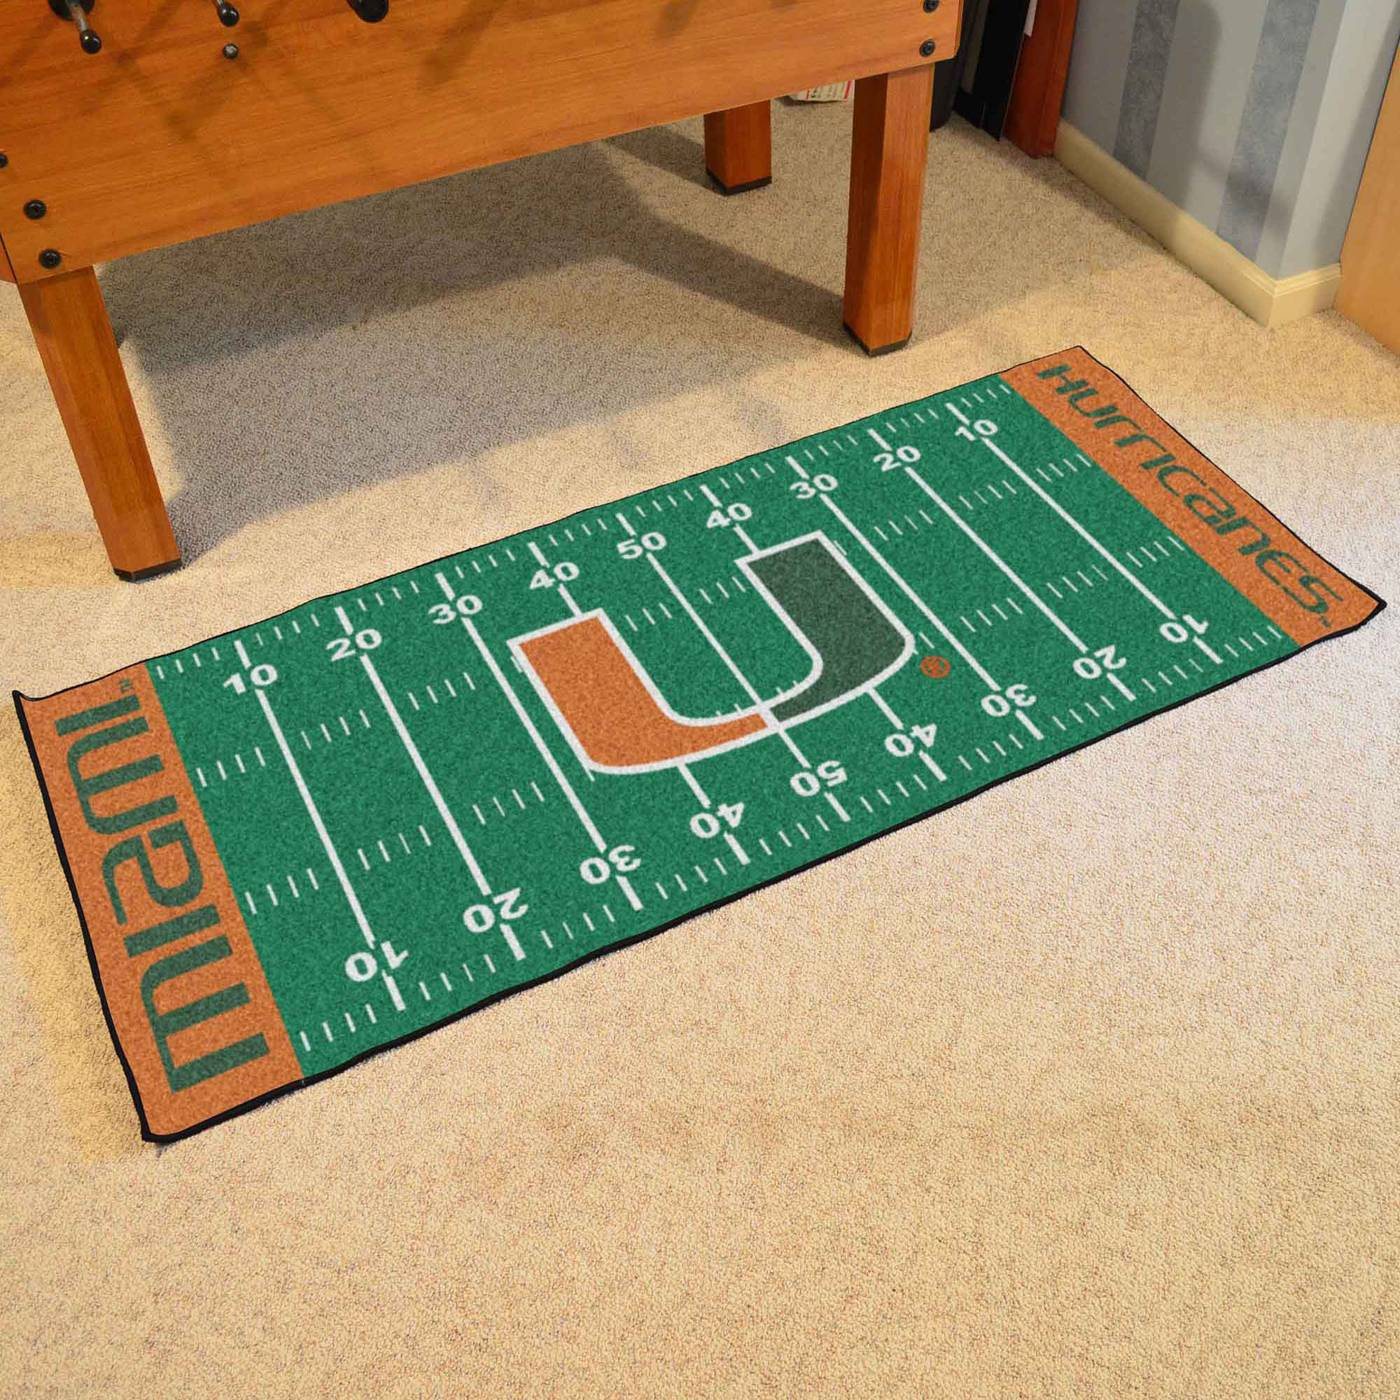 Miami Hurricanes Football Field Runner Rug